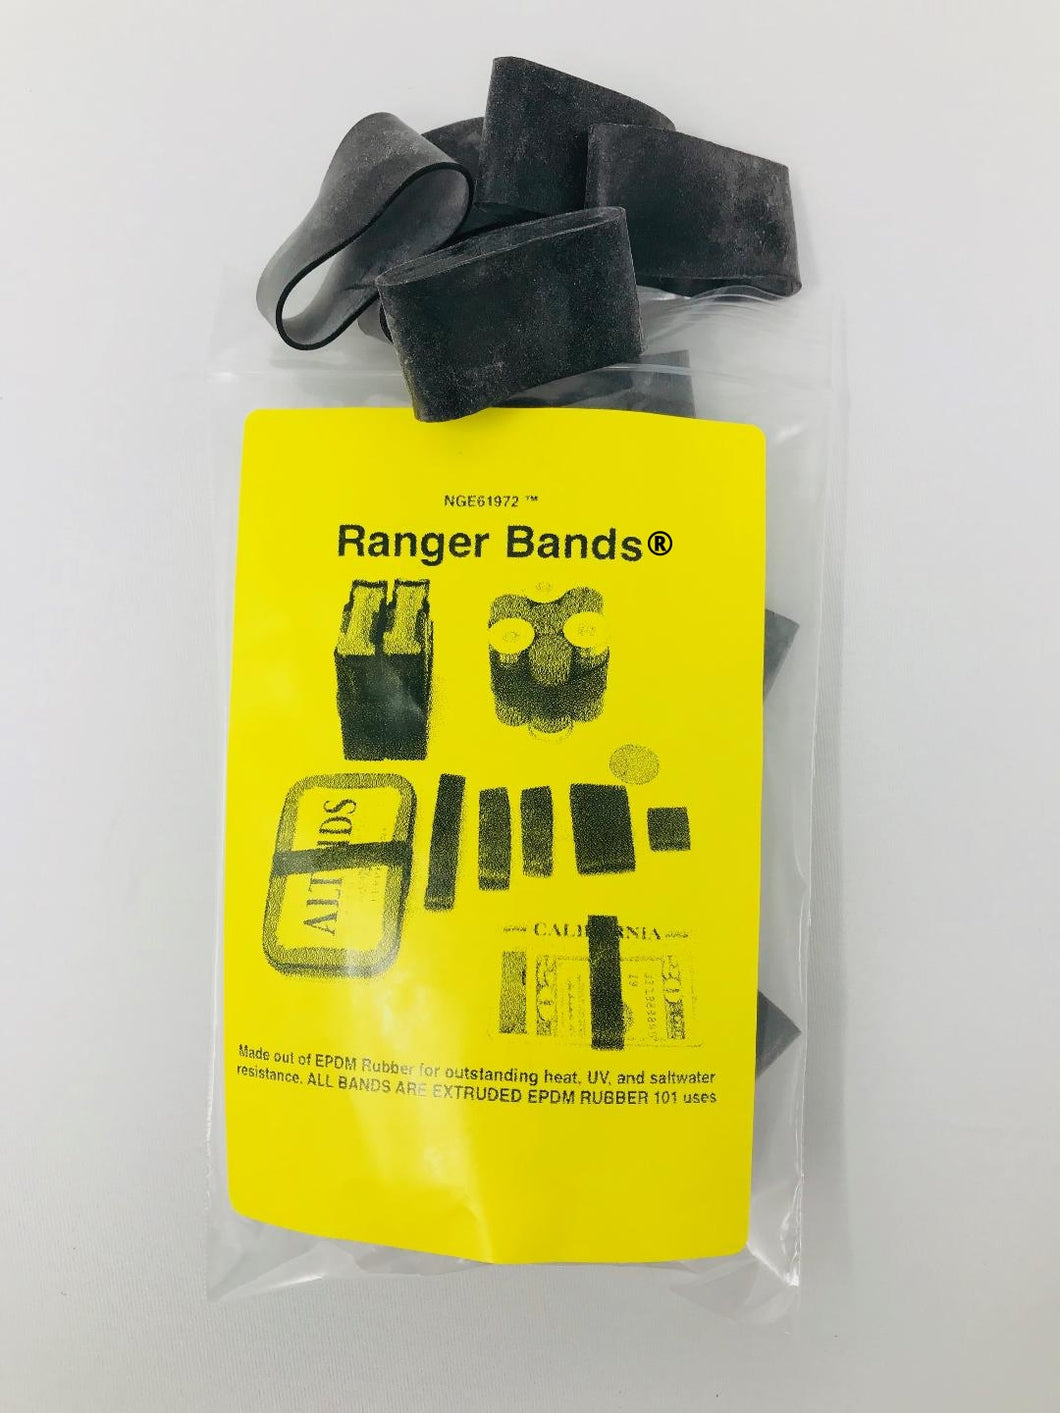 Ranger Bands® Medium Wide 48 Count Made from EPDM Rubber for Survival, Emergency Tinder and Strapping Gear of Various Sizes Made in the USA NGE61972